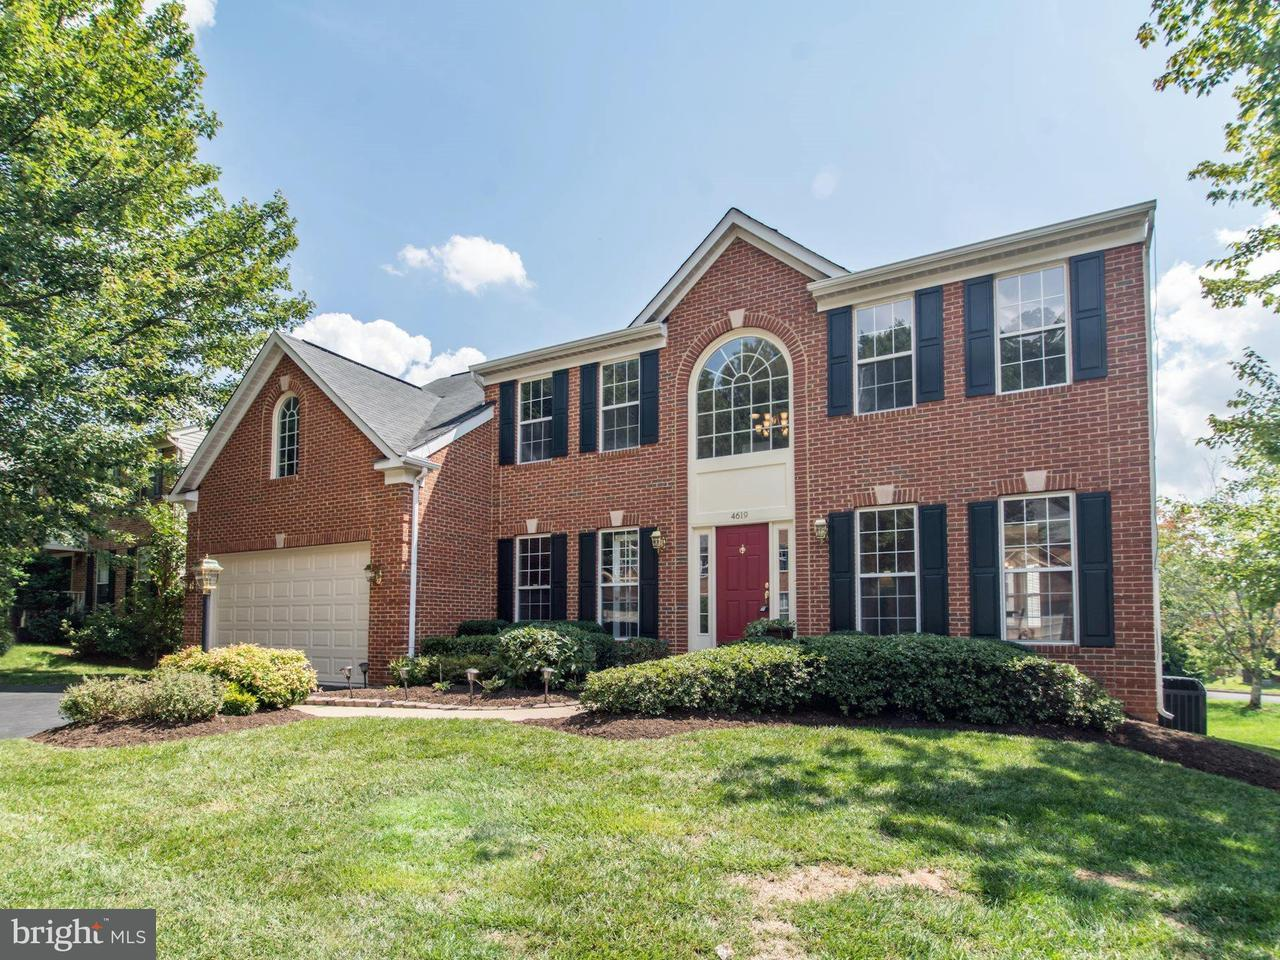 Single Family Home for Sale at 4619 CAMBRYAR Street 4619 CAMBRYAR Street Fairfax, Virginia 22030 United States